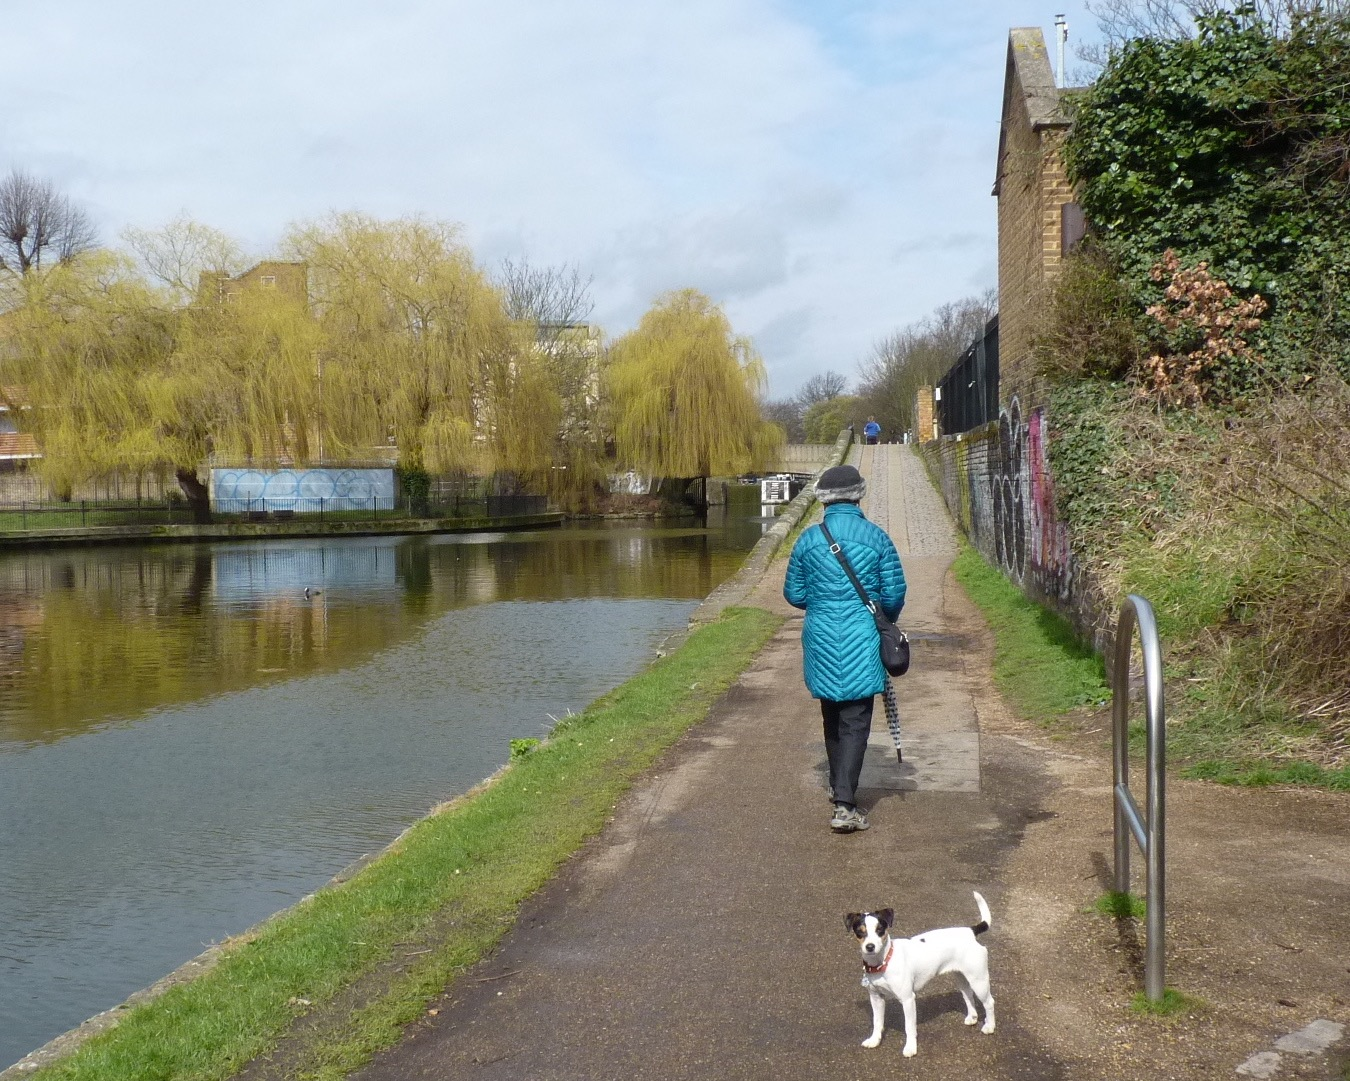 Here is a picture of the canals I walk down every day. They even have boats that people live on!